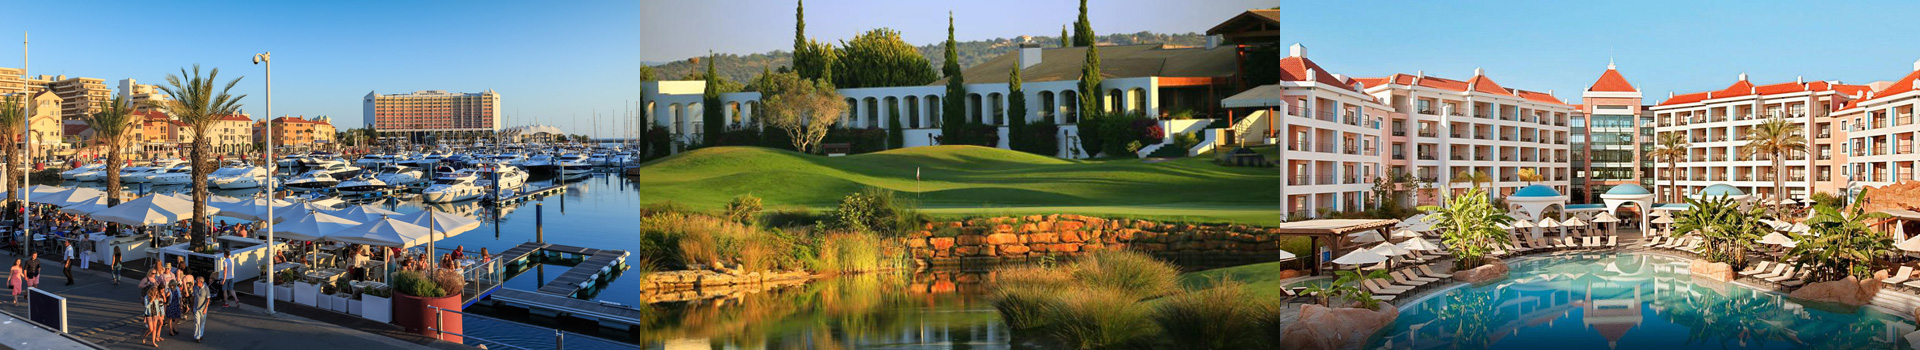 Vilmoura Holidays Tee Times Golf Agency